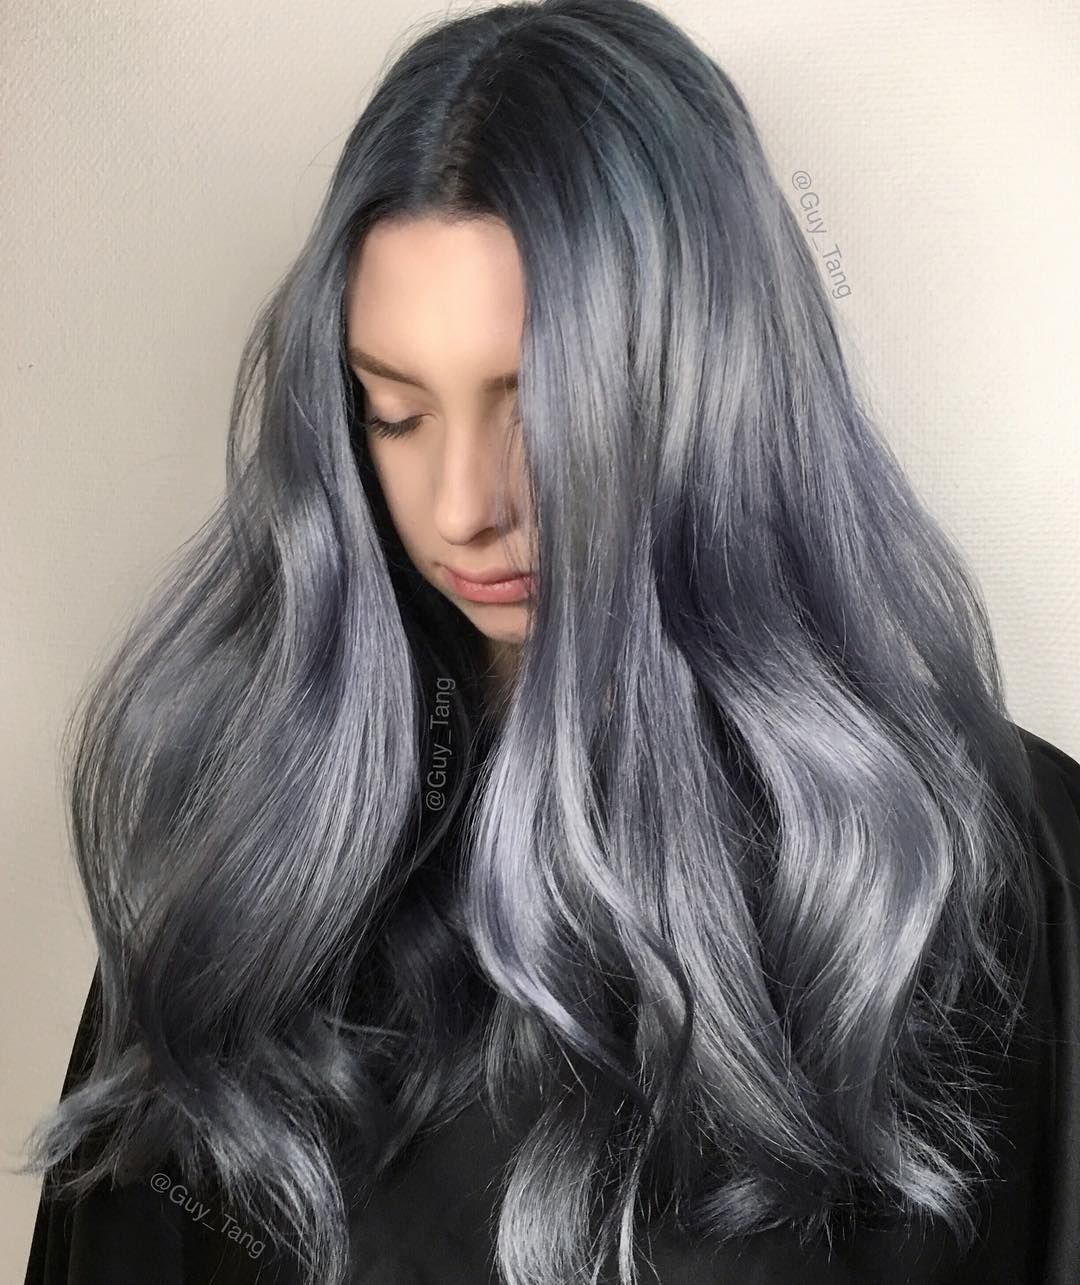 metallic denim hair color by guy tang silver hair color pinterest denim hair guy tang and. Black Bedroom Furniture Sets. Home Design Ideas